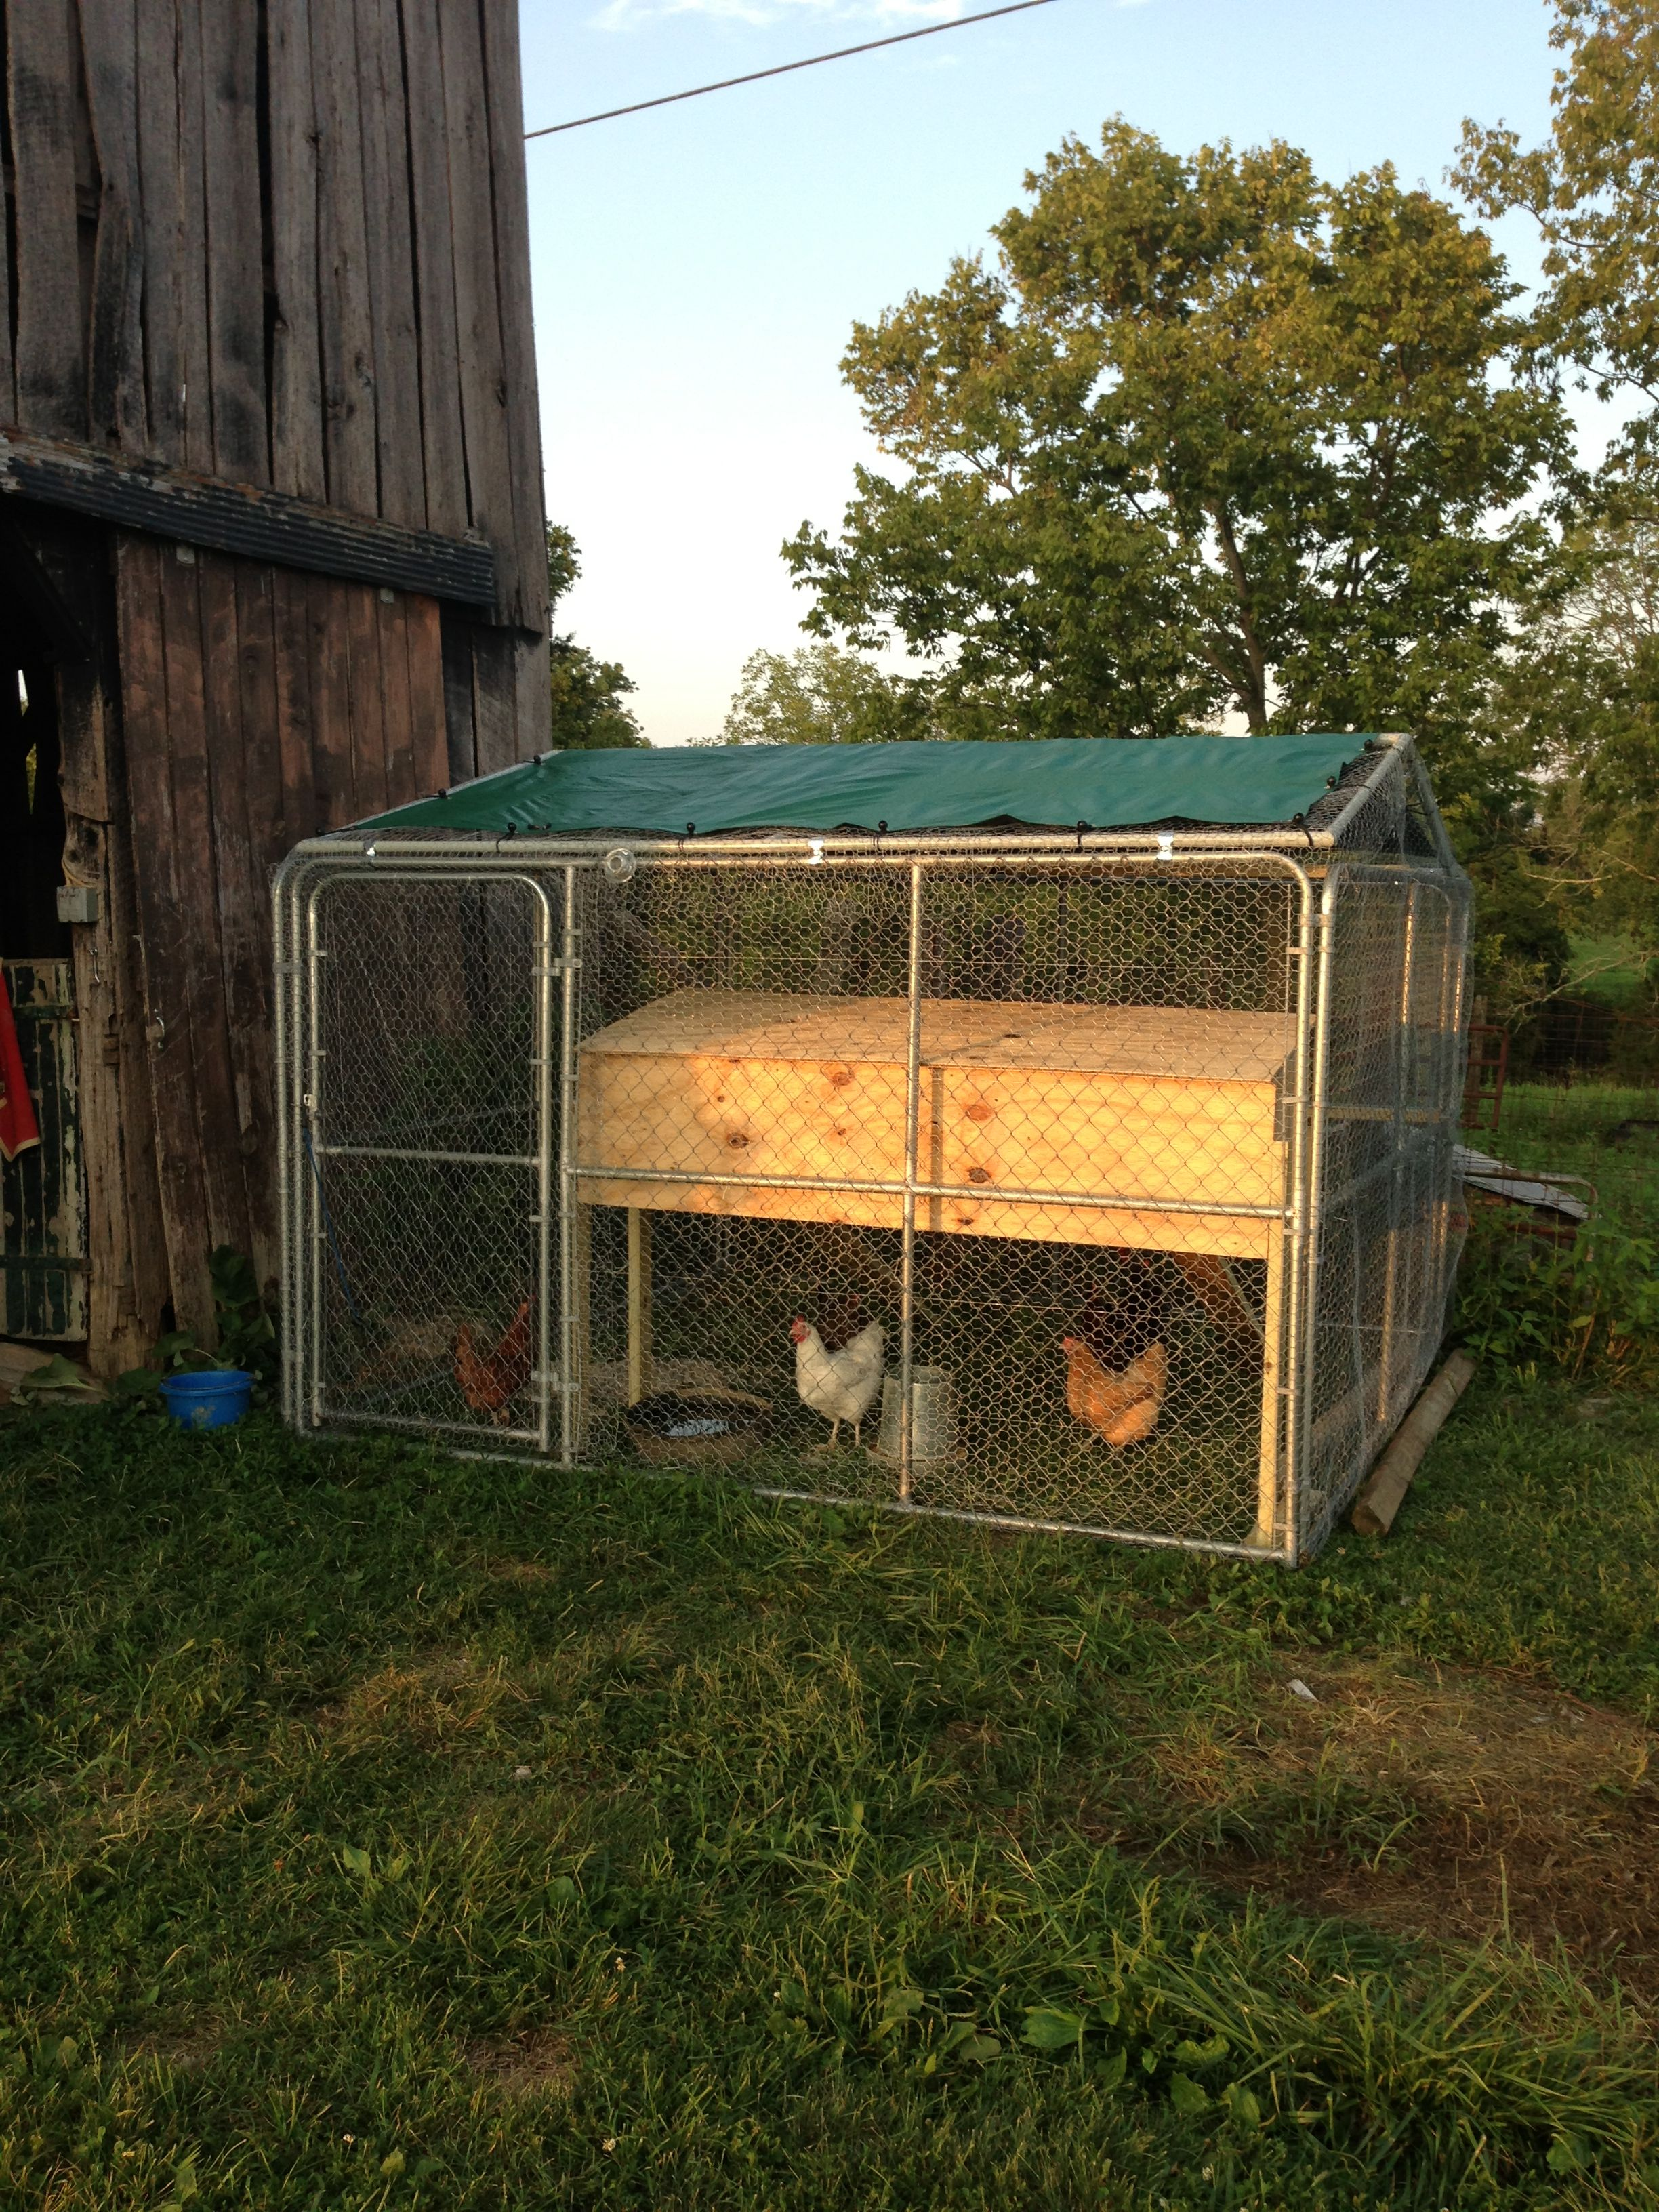 Chicken Coop From A 10x10 Dog Kennel Wrapped In Chicken Wire Cheap Dog Kennels 10x10 Dog Kennel Diy Dog Kennel